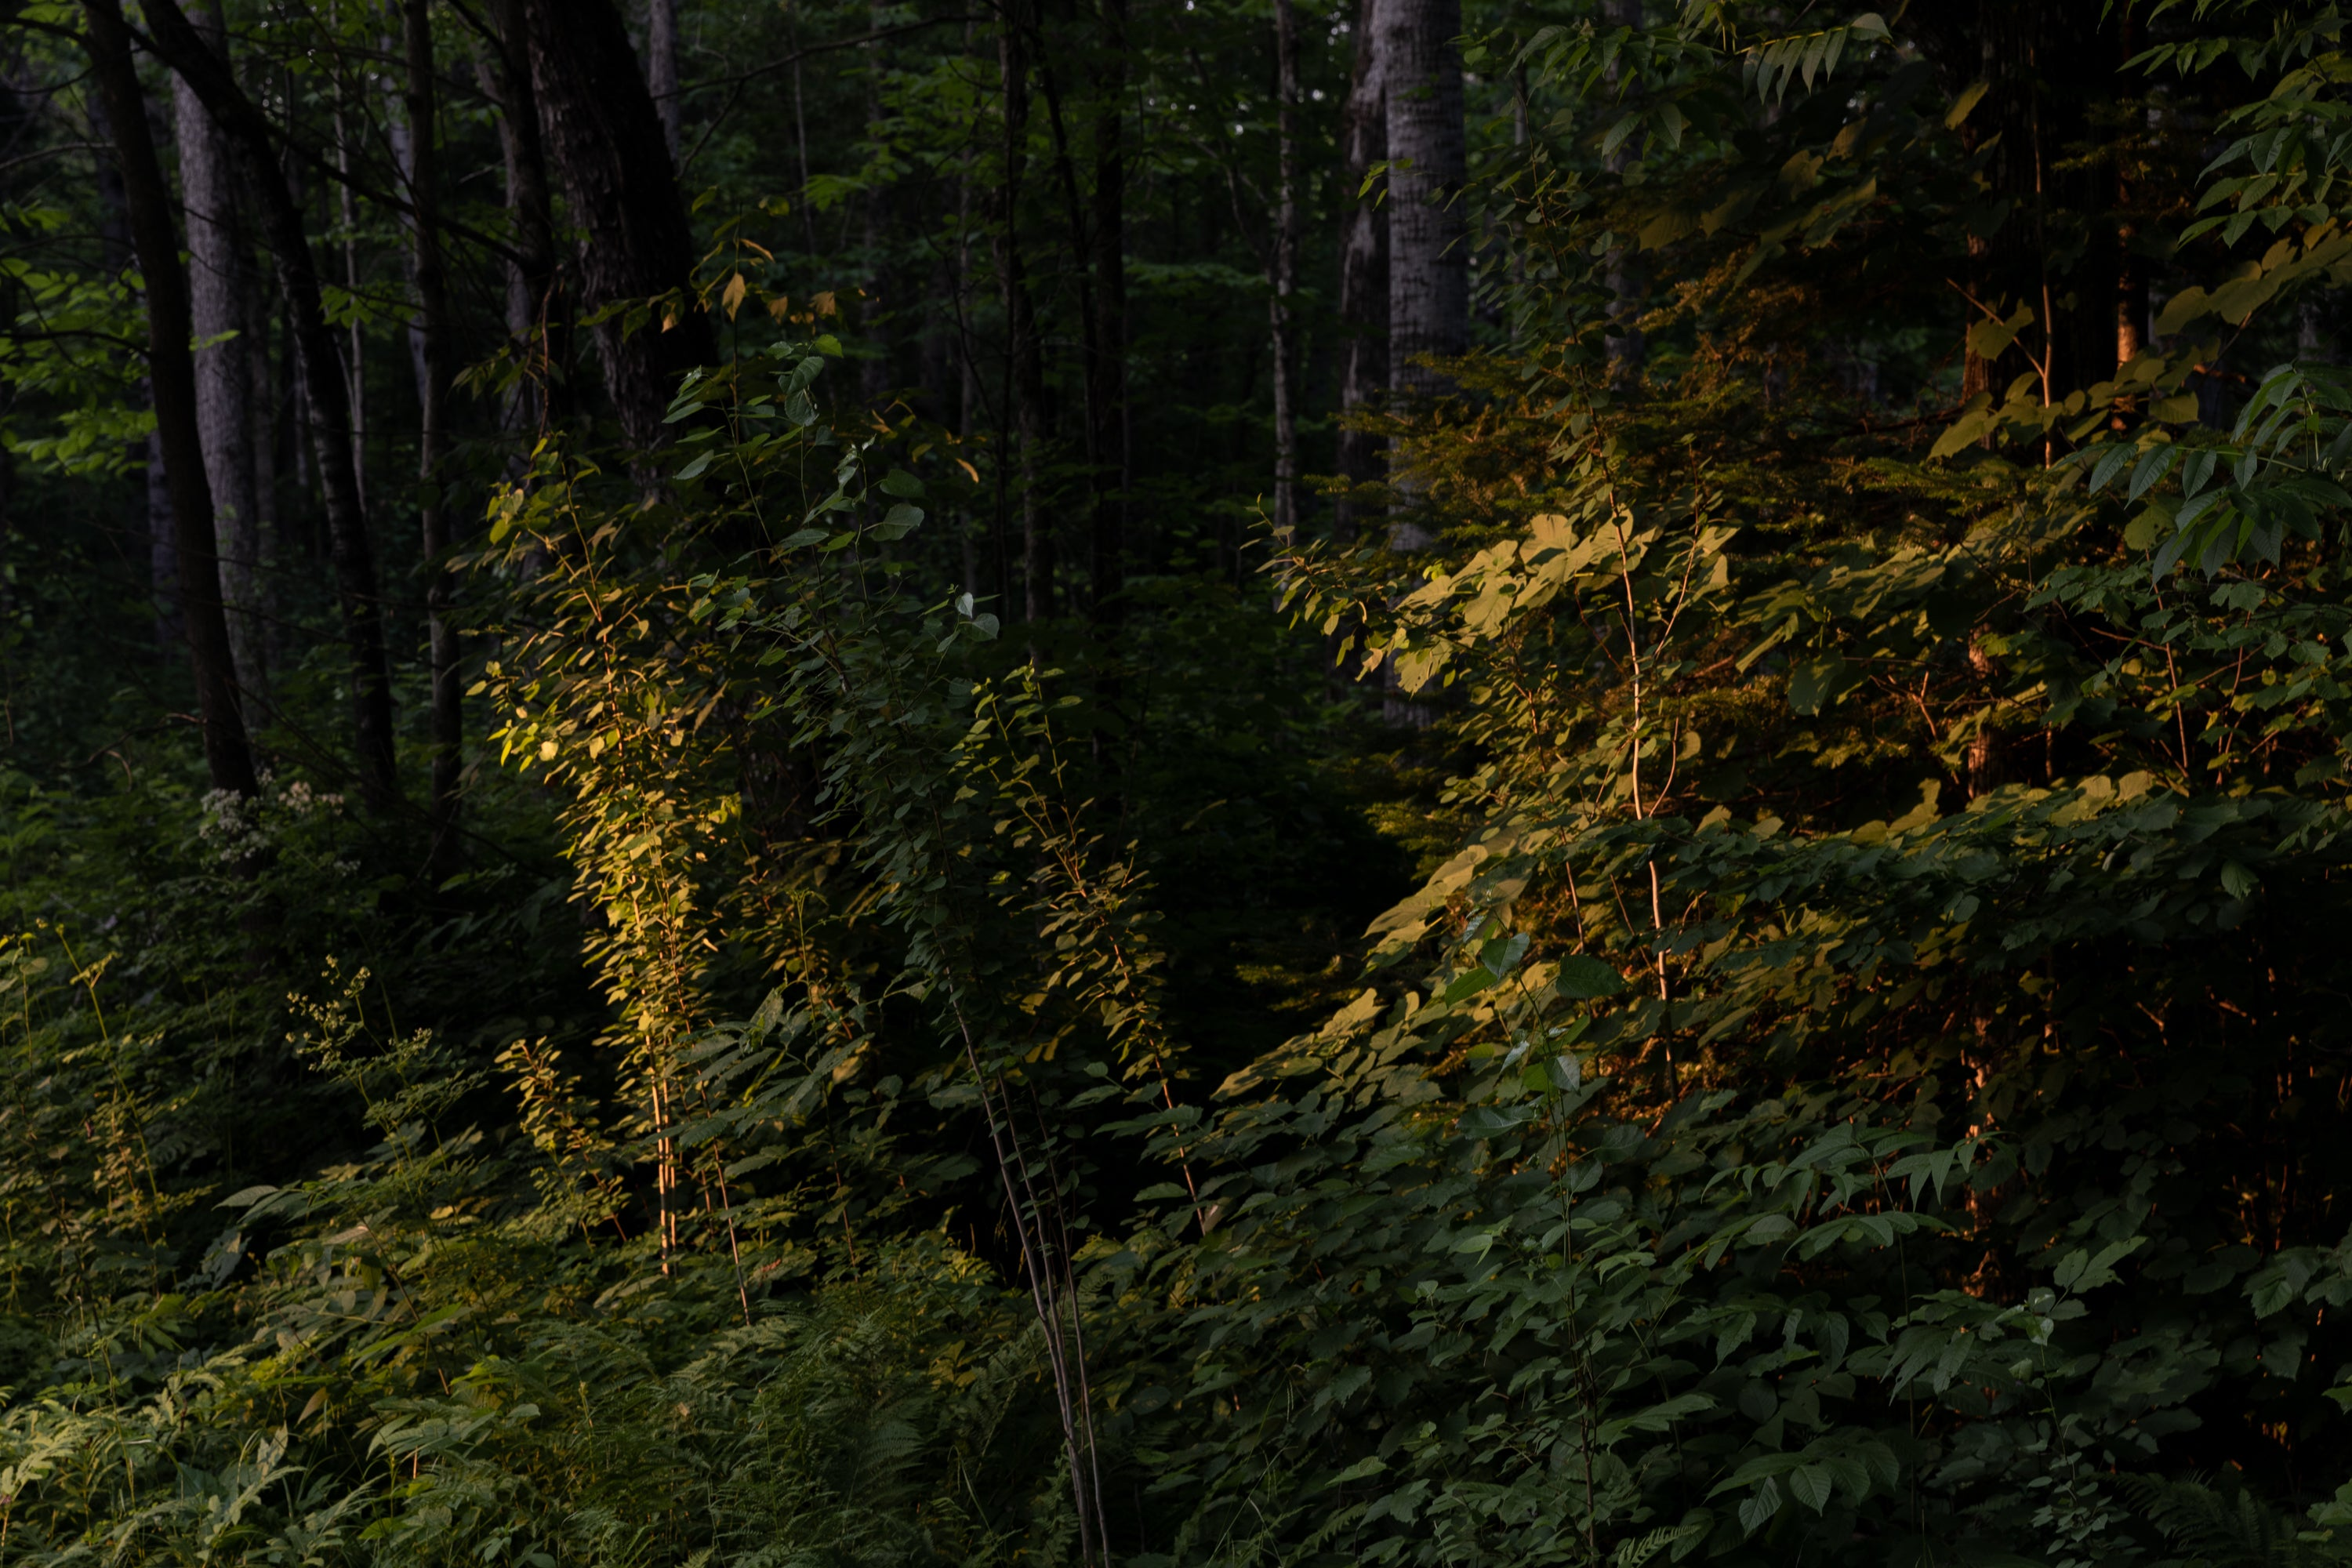 Lauren Kolyn - Trees at magic hour. Solo camping trip at Bon Echo. July 2019